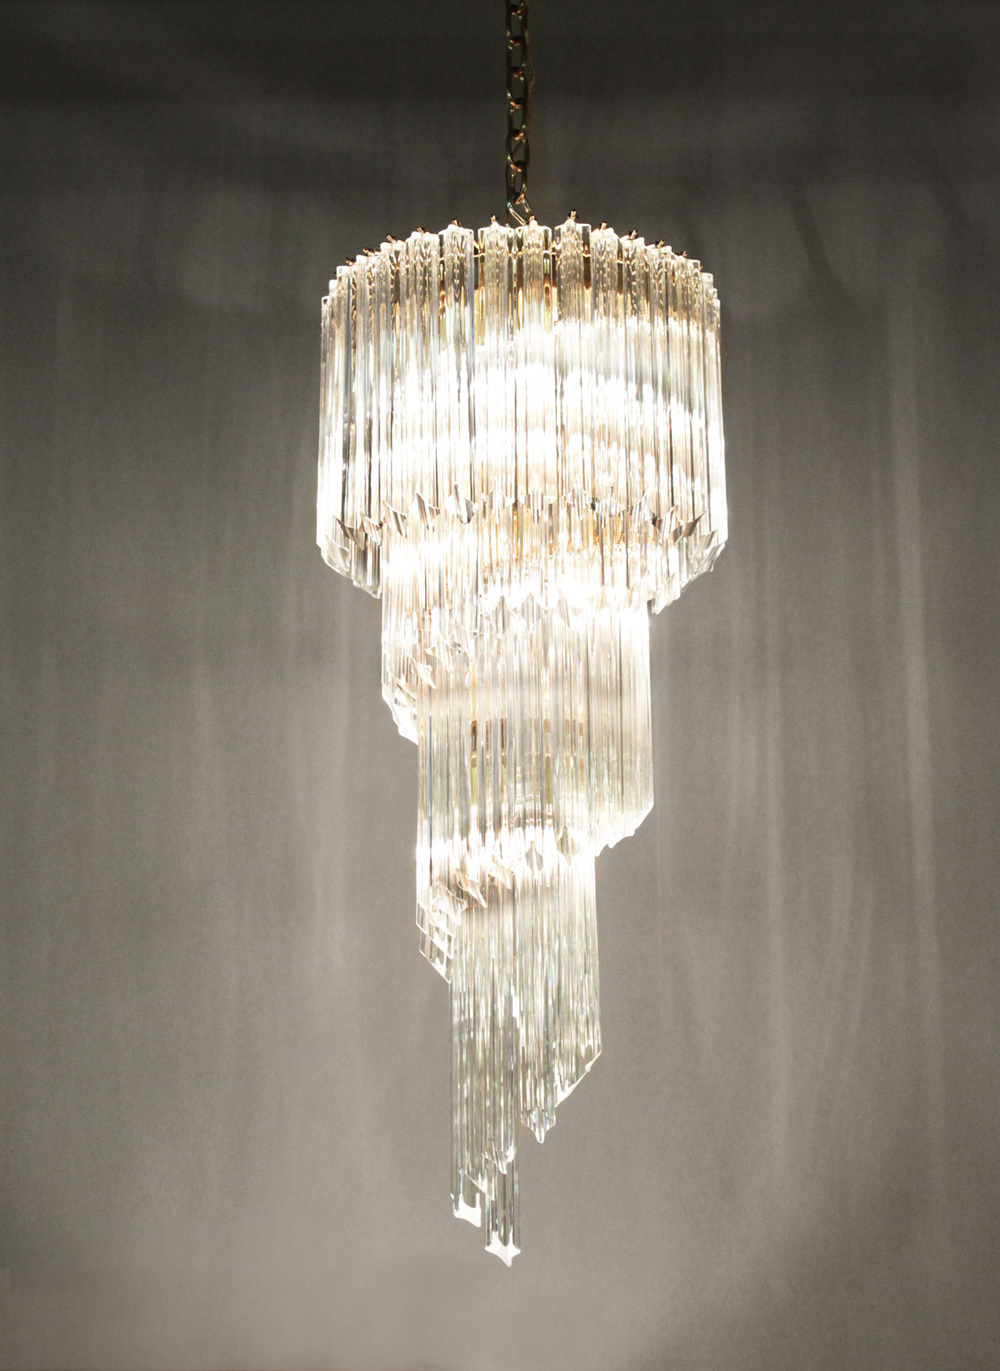 Venini 65 medium spiral glas rods chandelier interior hires.jpg